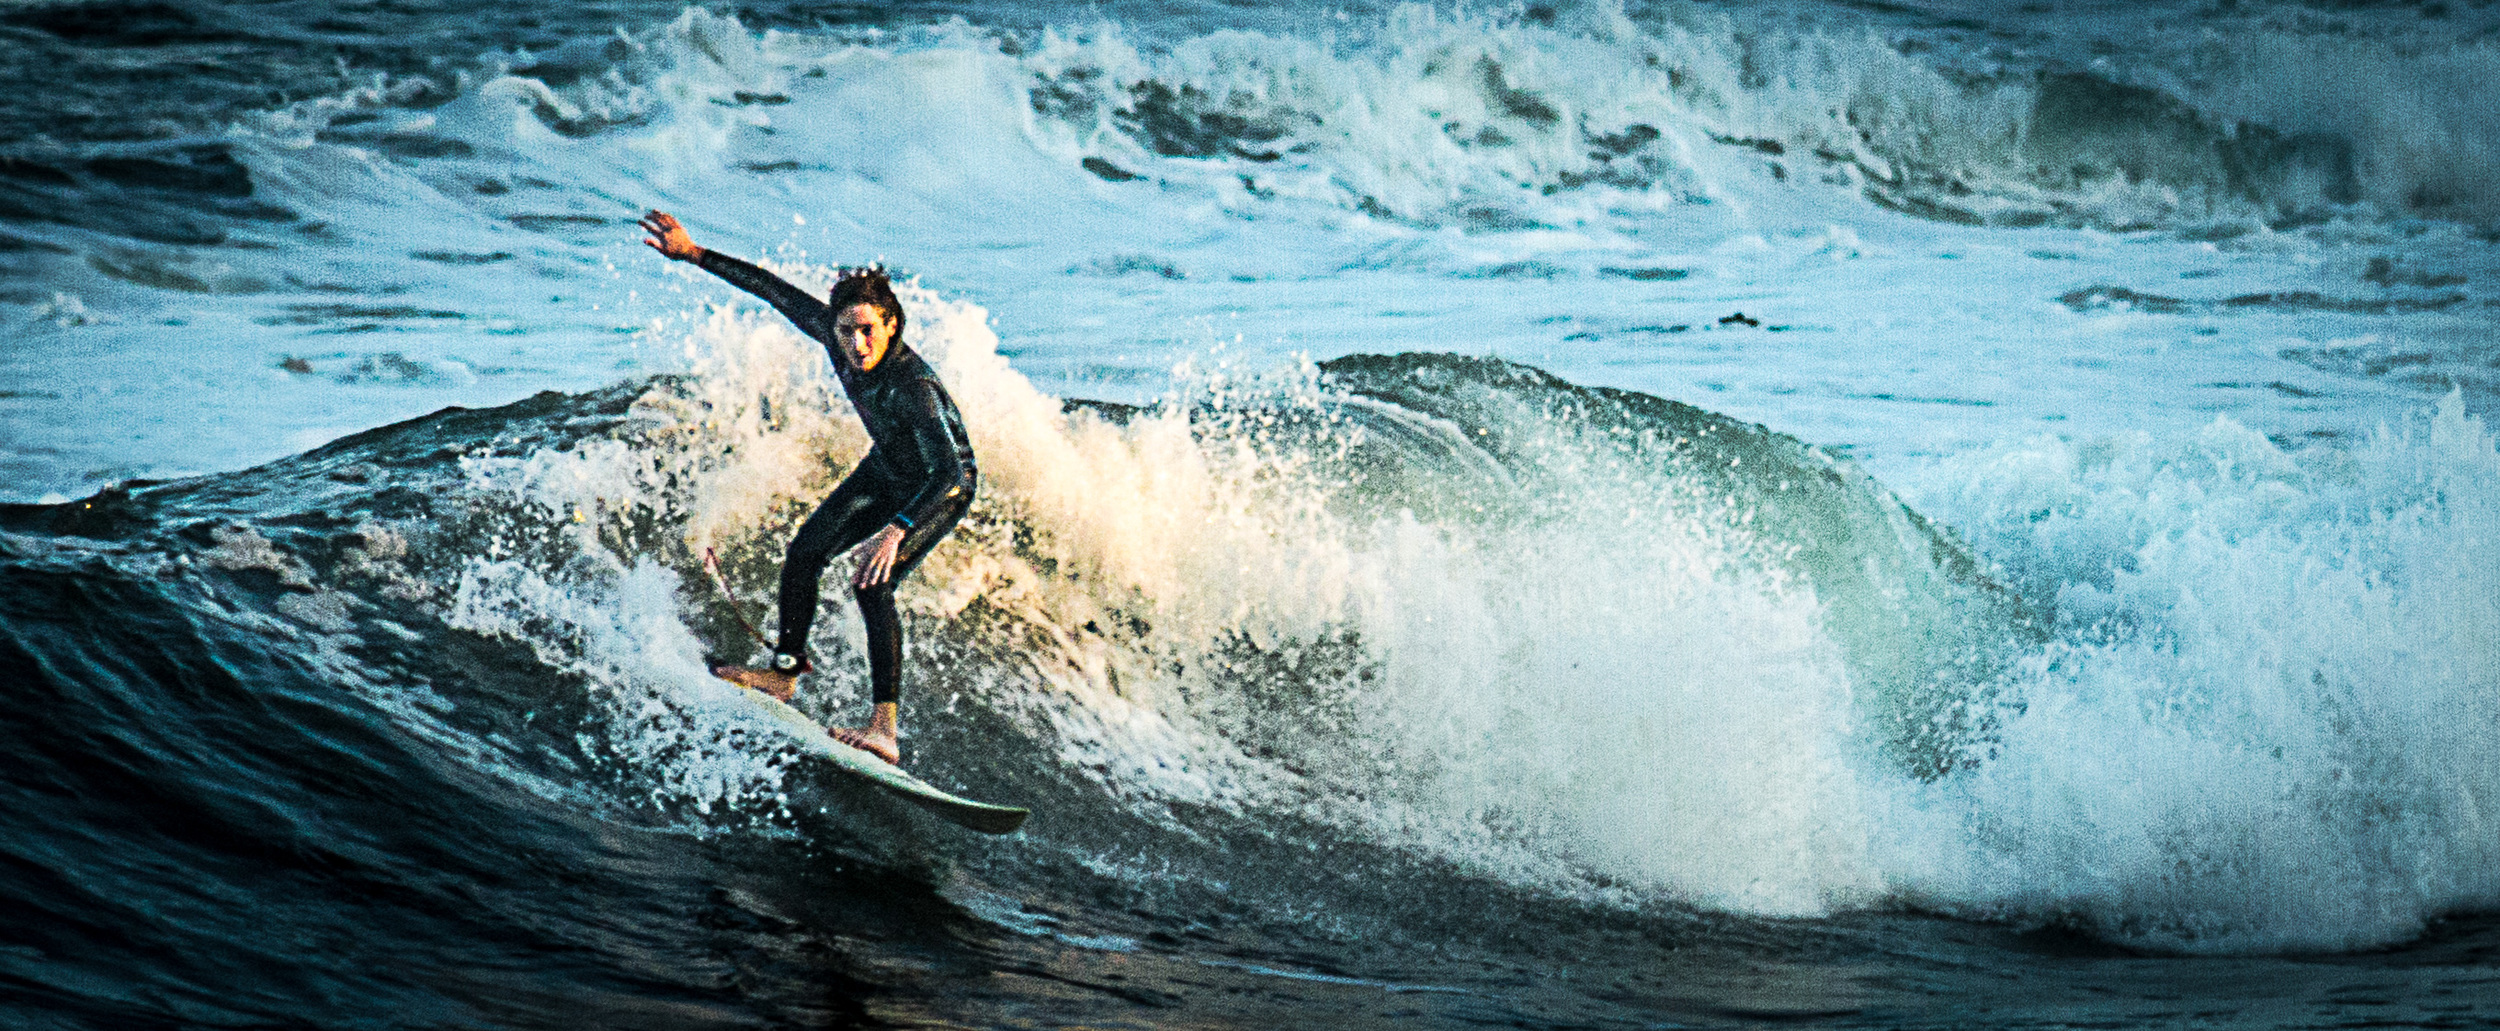 A surfer finds a righteous wave with a heavenly glow during a recent swell in Narragansett, R.I.